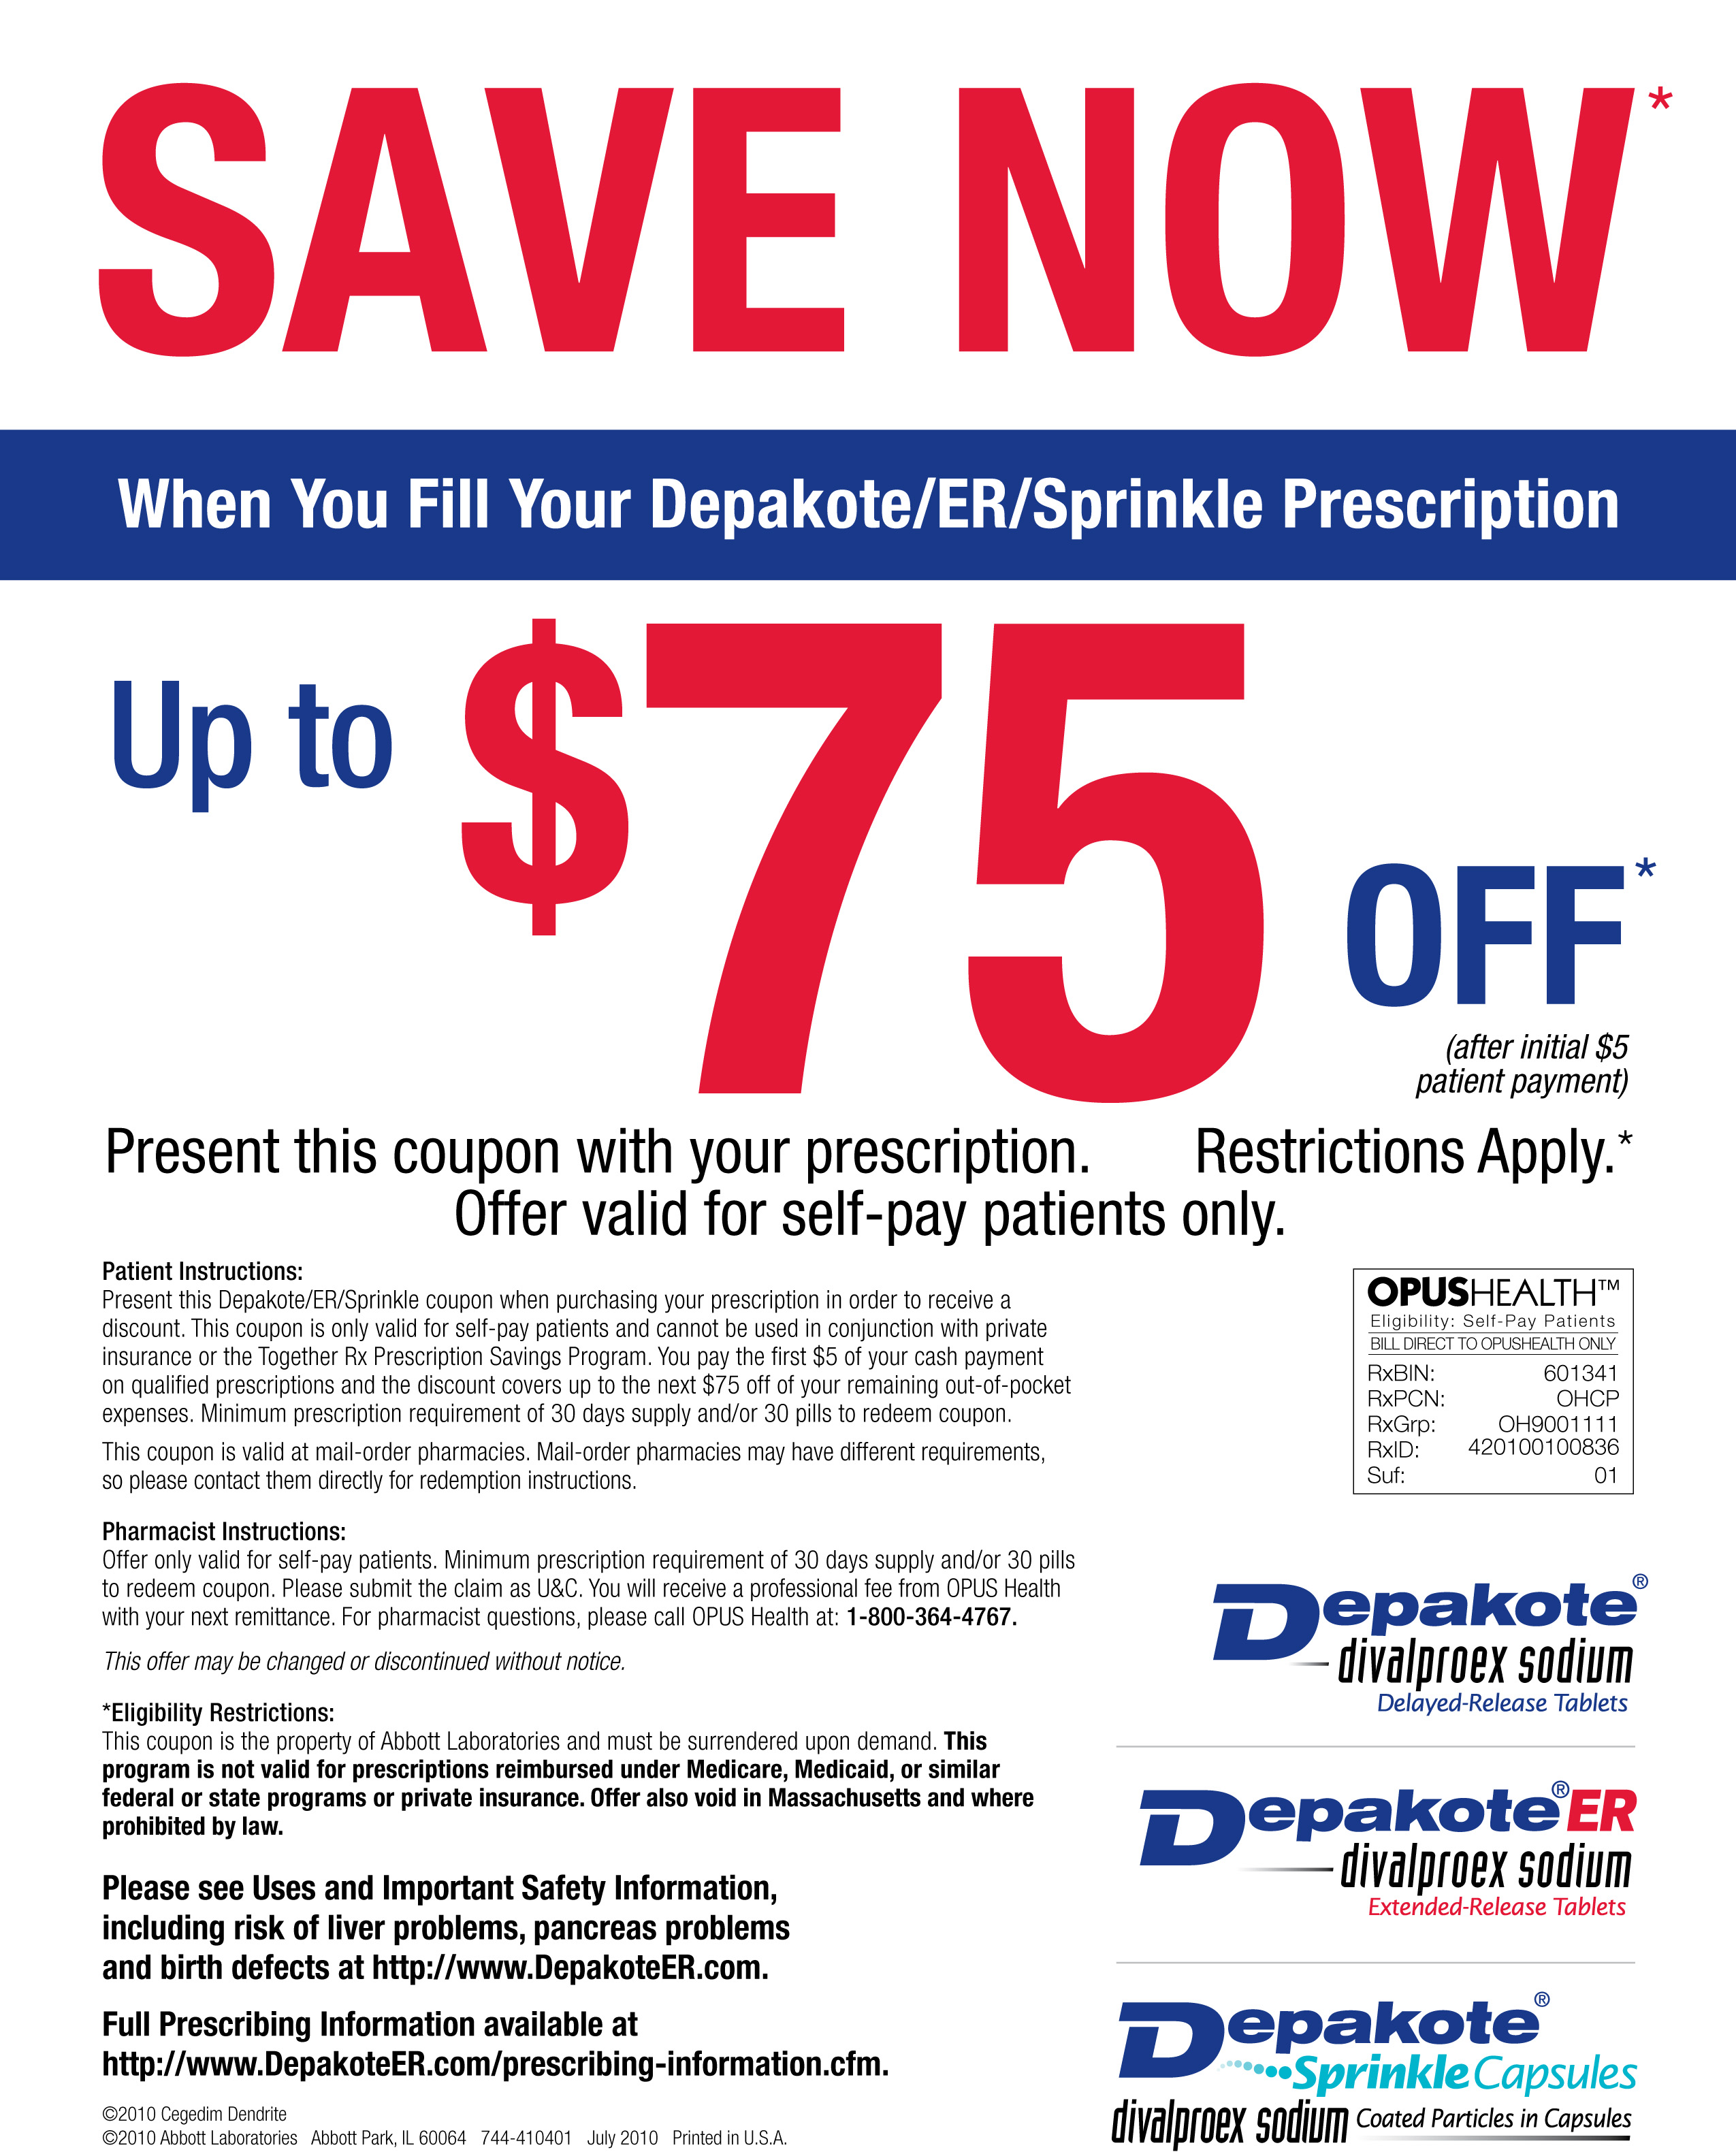 Register and print a reusable coupon to save up to $60 off your prescription of Vyvanse®.